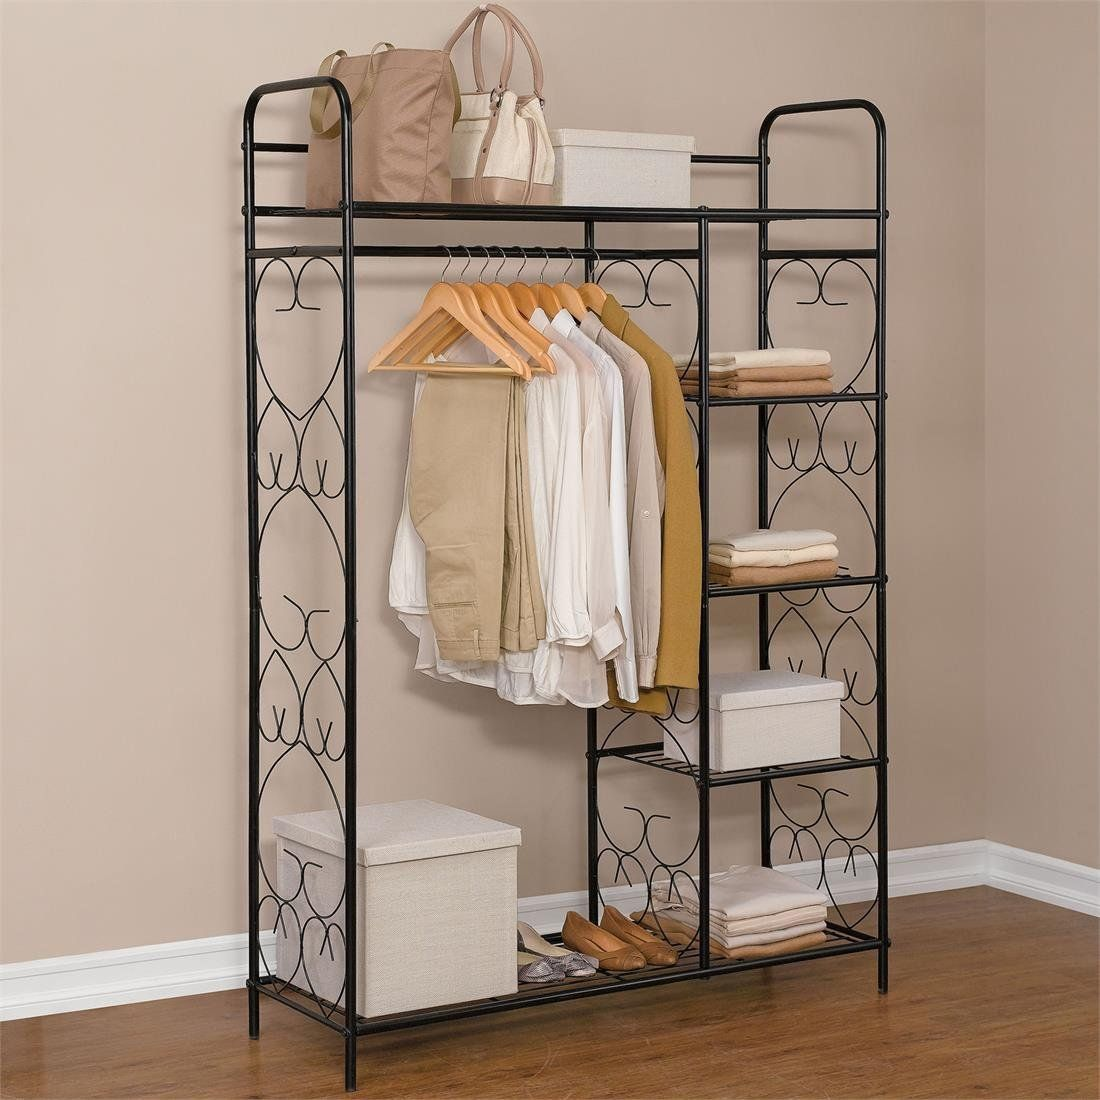 Metal Closet Amazon Brylanehome 5 Tier Metal Closet With Hanging